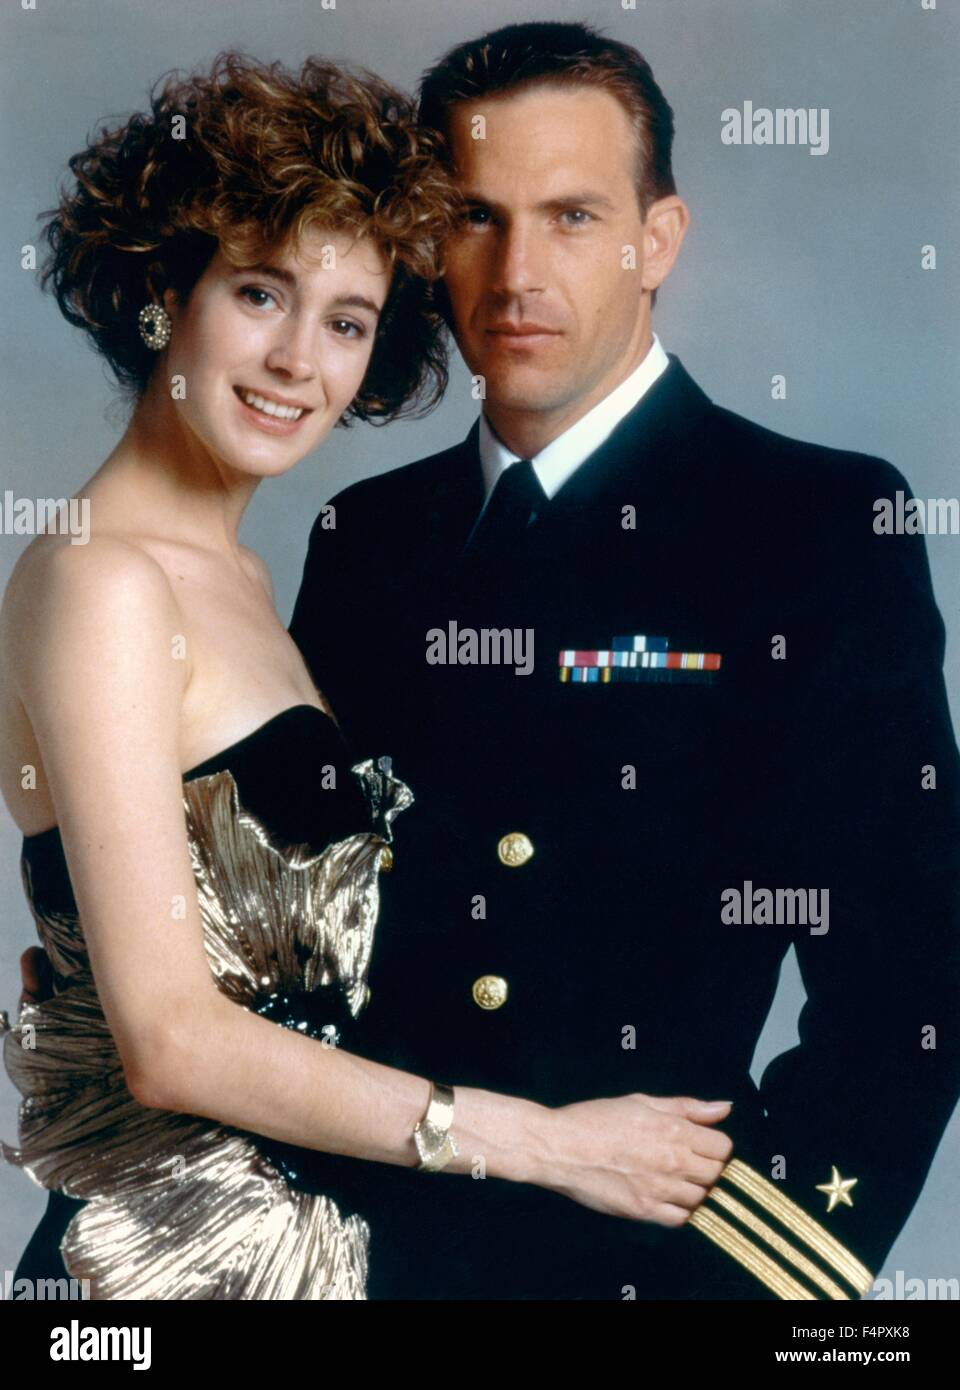 Sean Young and Kevin Costner / No Way Out / 1987 / directed by Roger Donaldson / [Orion Pictures] - Stock Image